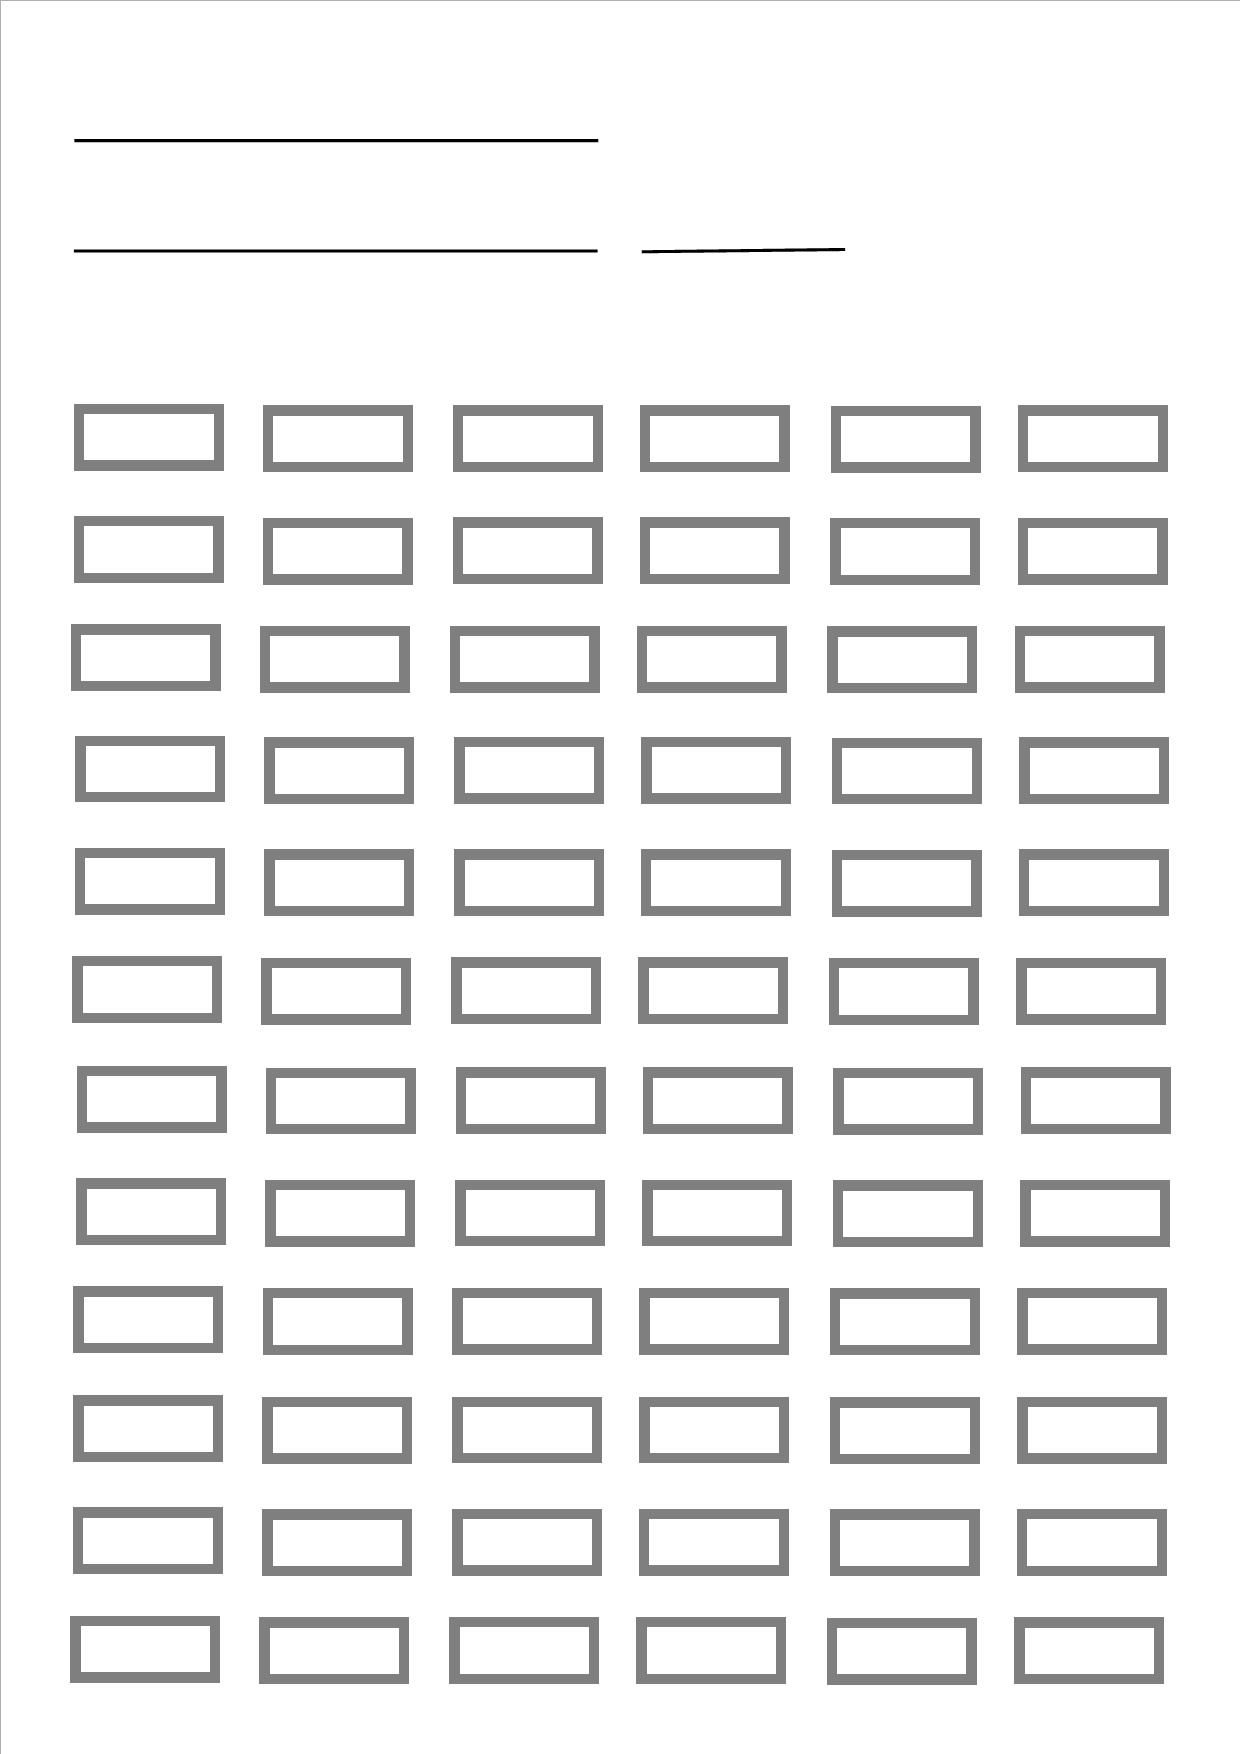 Extrêmement blank pencil chart for up to 72 pencils. prints A4 size. Designed  PS87